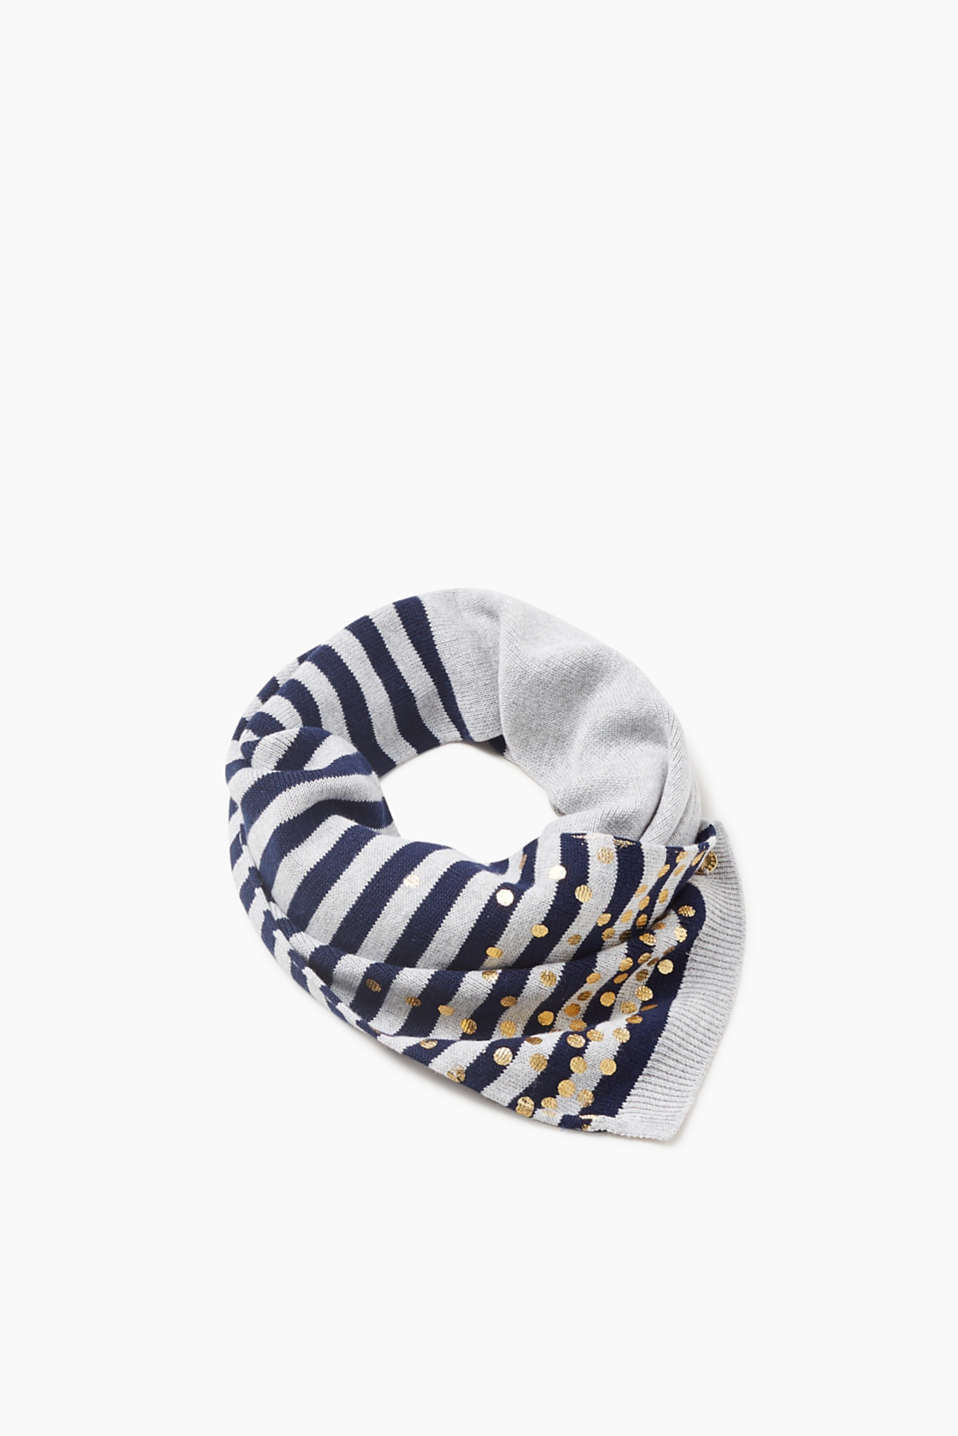 The interplay of stripes and shimmering dots give this scarf its pretty look!